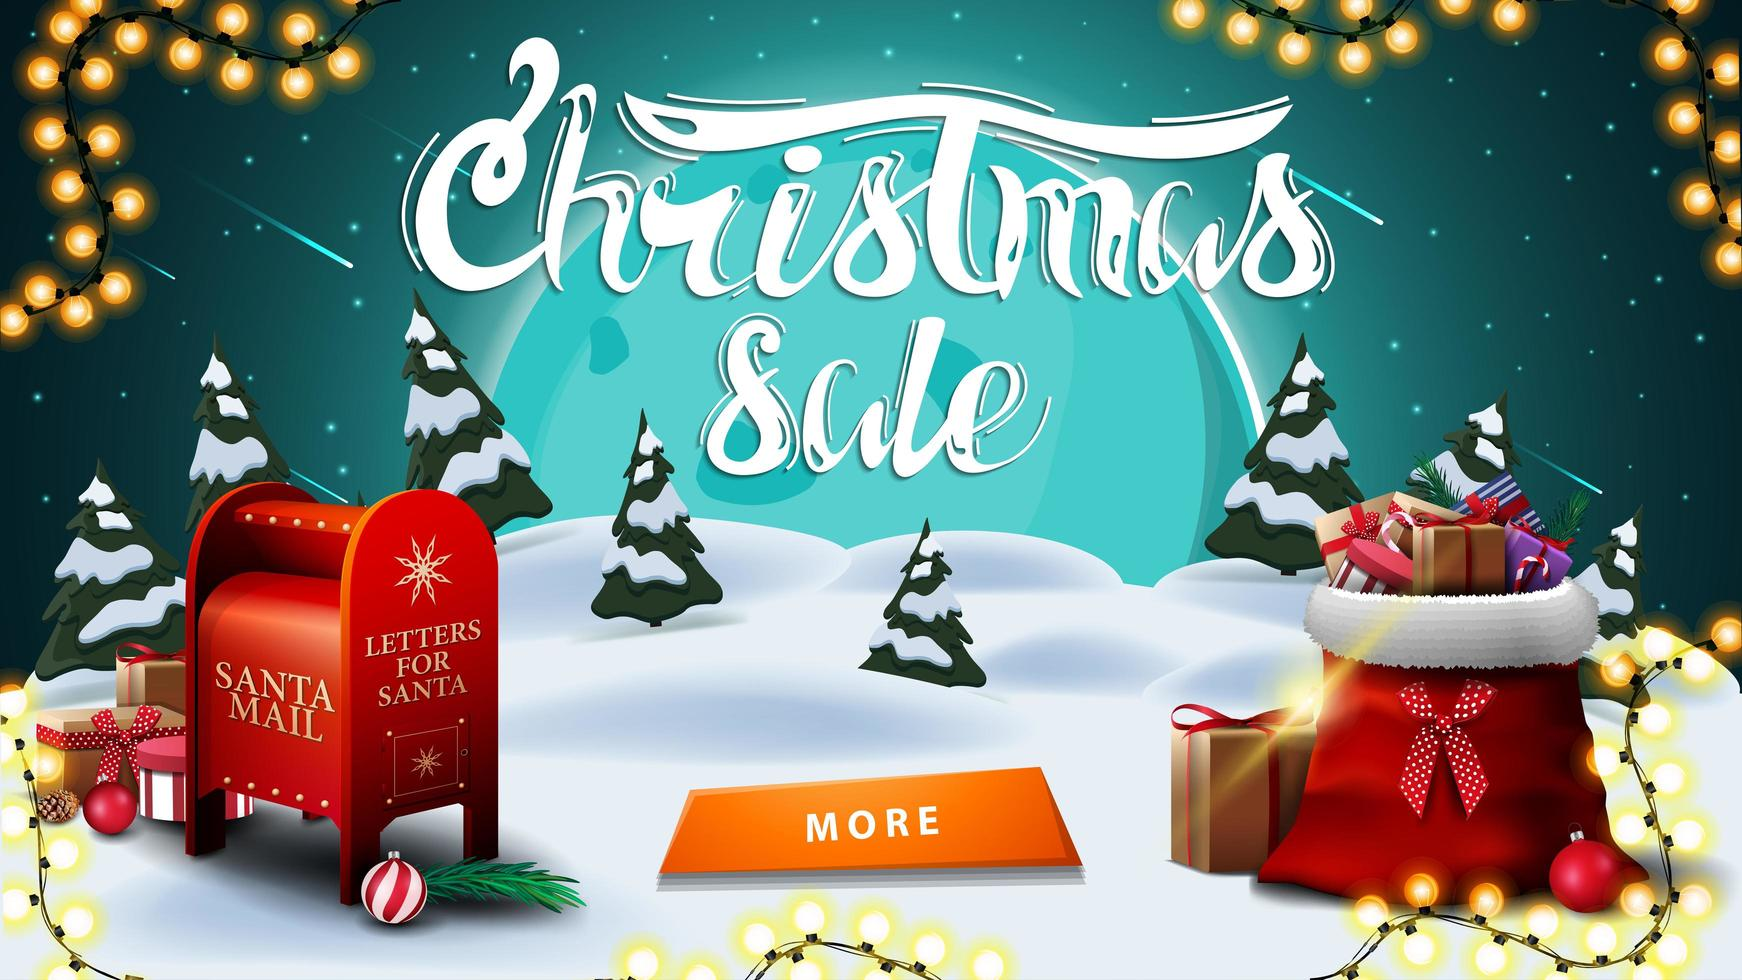 Christmas sale, discount banner with winter landscape. Big blue moon, starry sky, garland, button, Santa letterbox and Santa Claus bag with presents vector